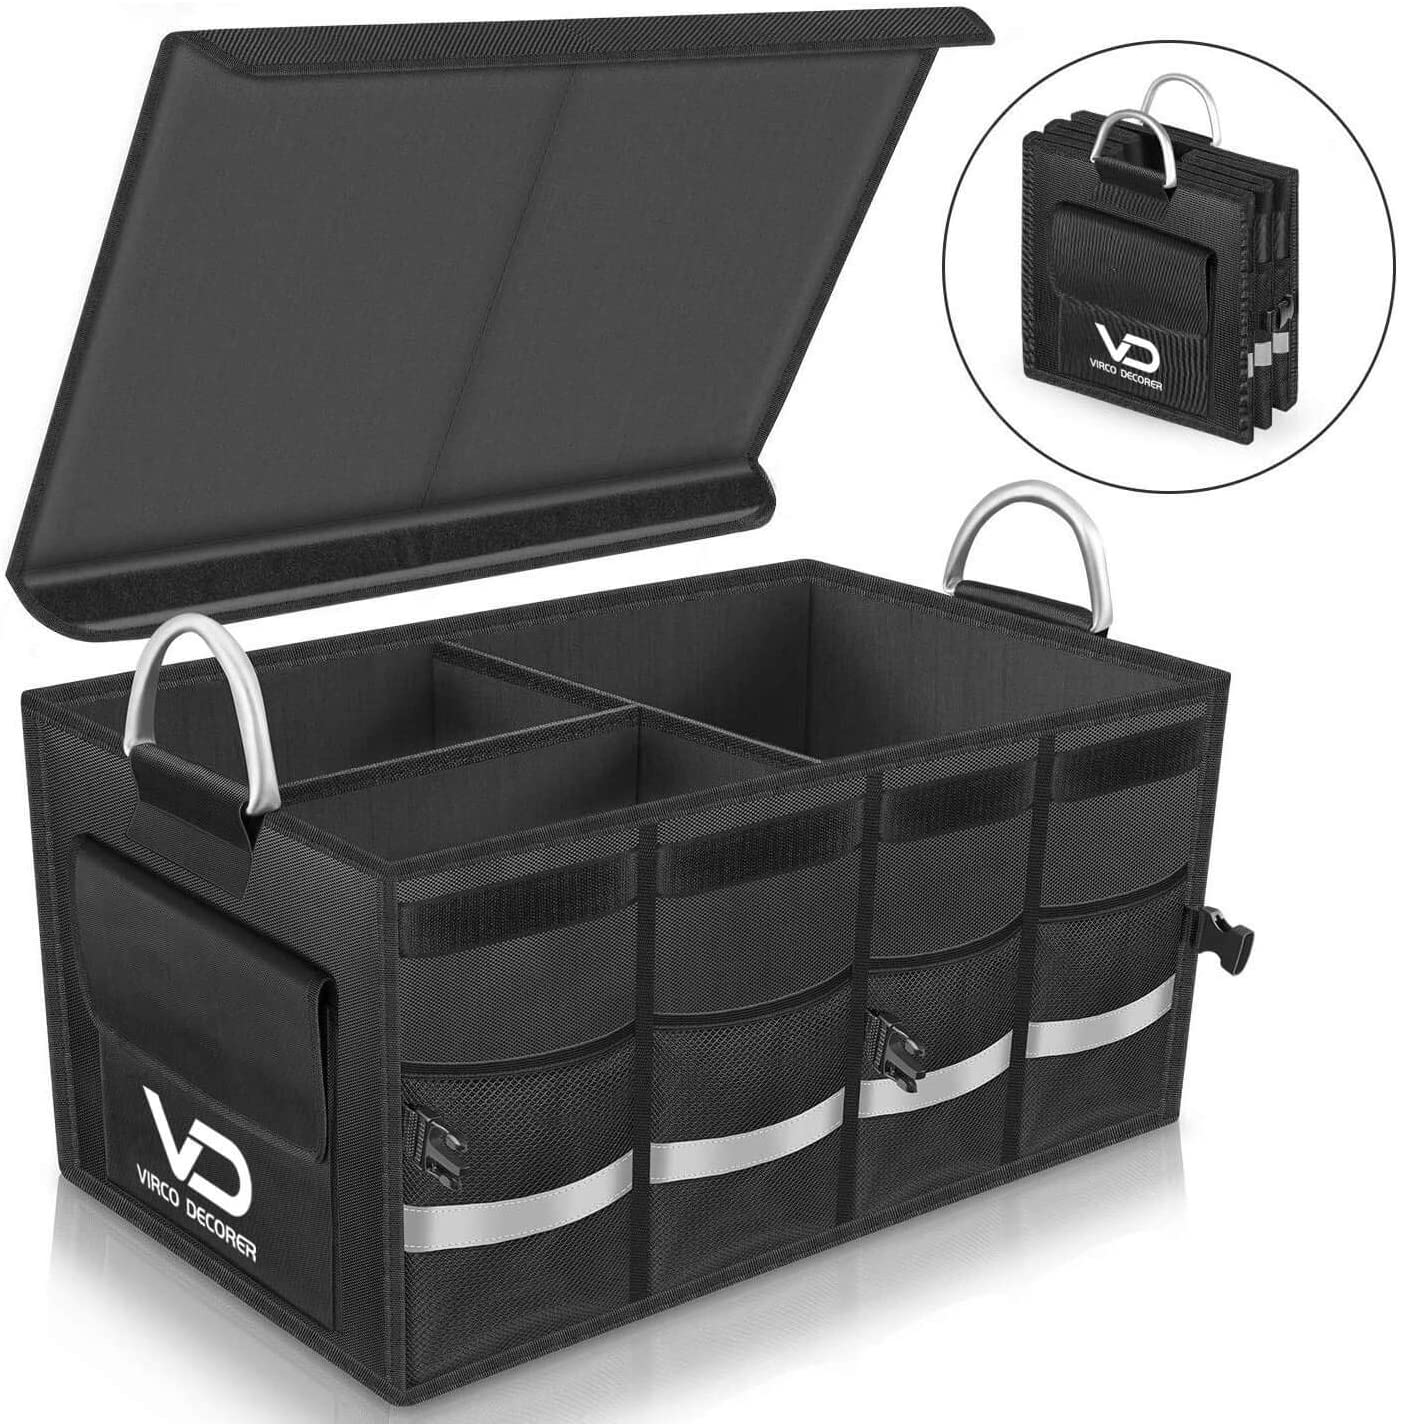 Truck Organizer Aluminum Handle Universal Car Organizer Trunk with Lid Durable Dirty-Resistant Oxford Fabric VD Cargo Trunk Organizers for SUV Easy Expandable Foldable Car Storage Organizer 63L